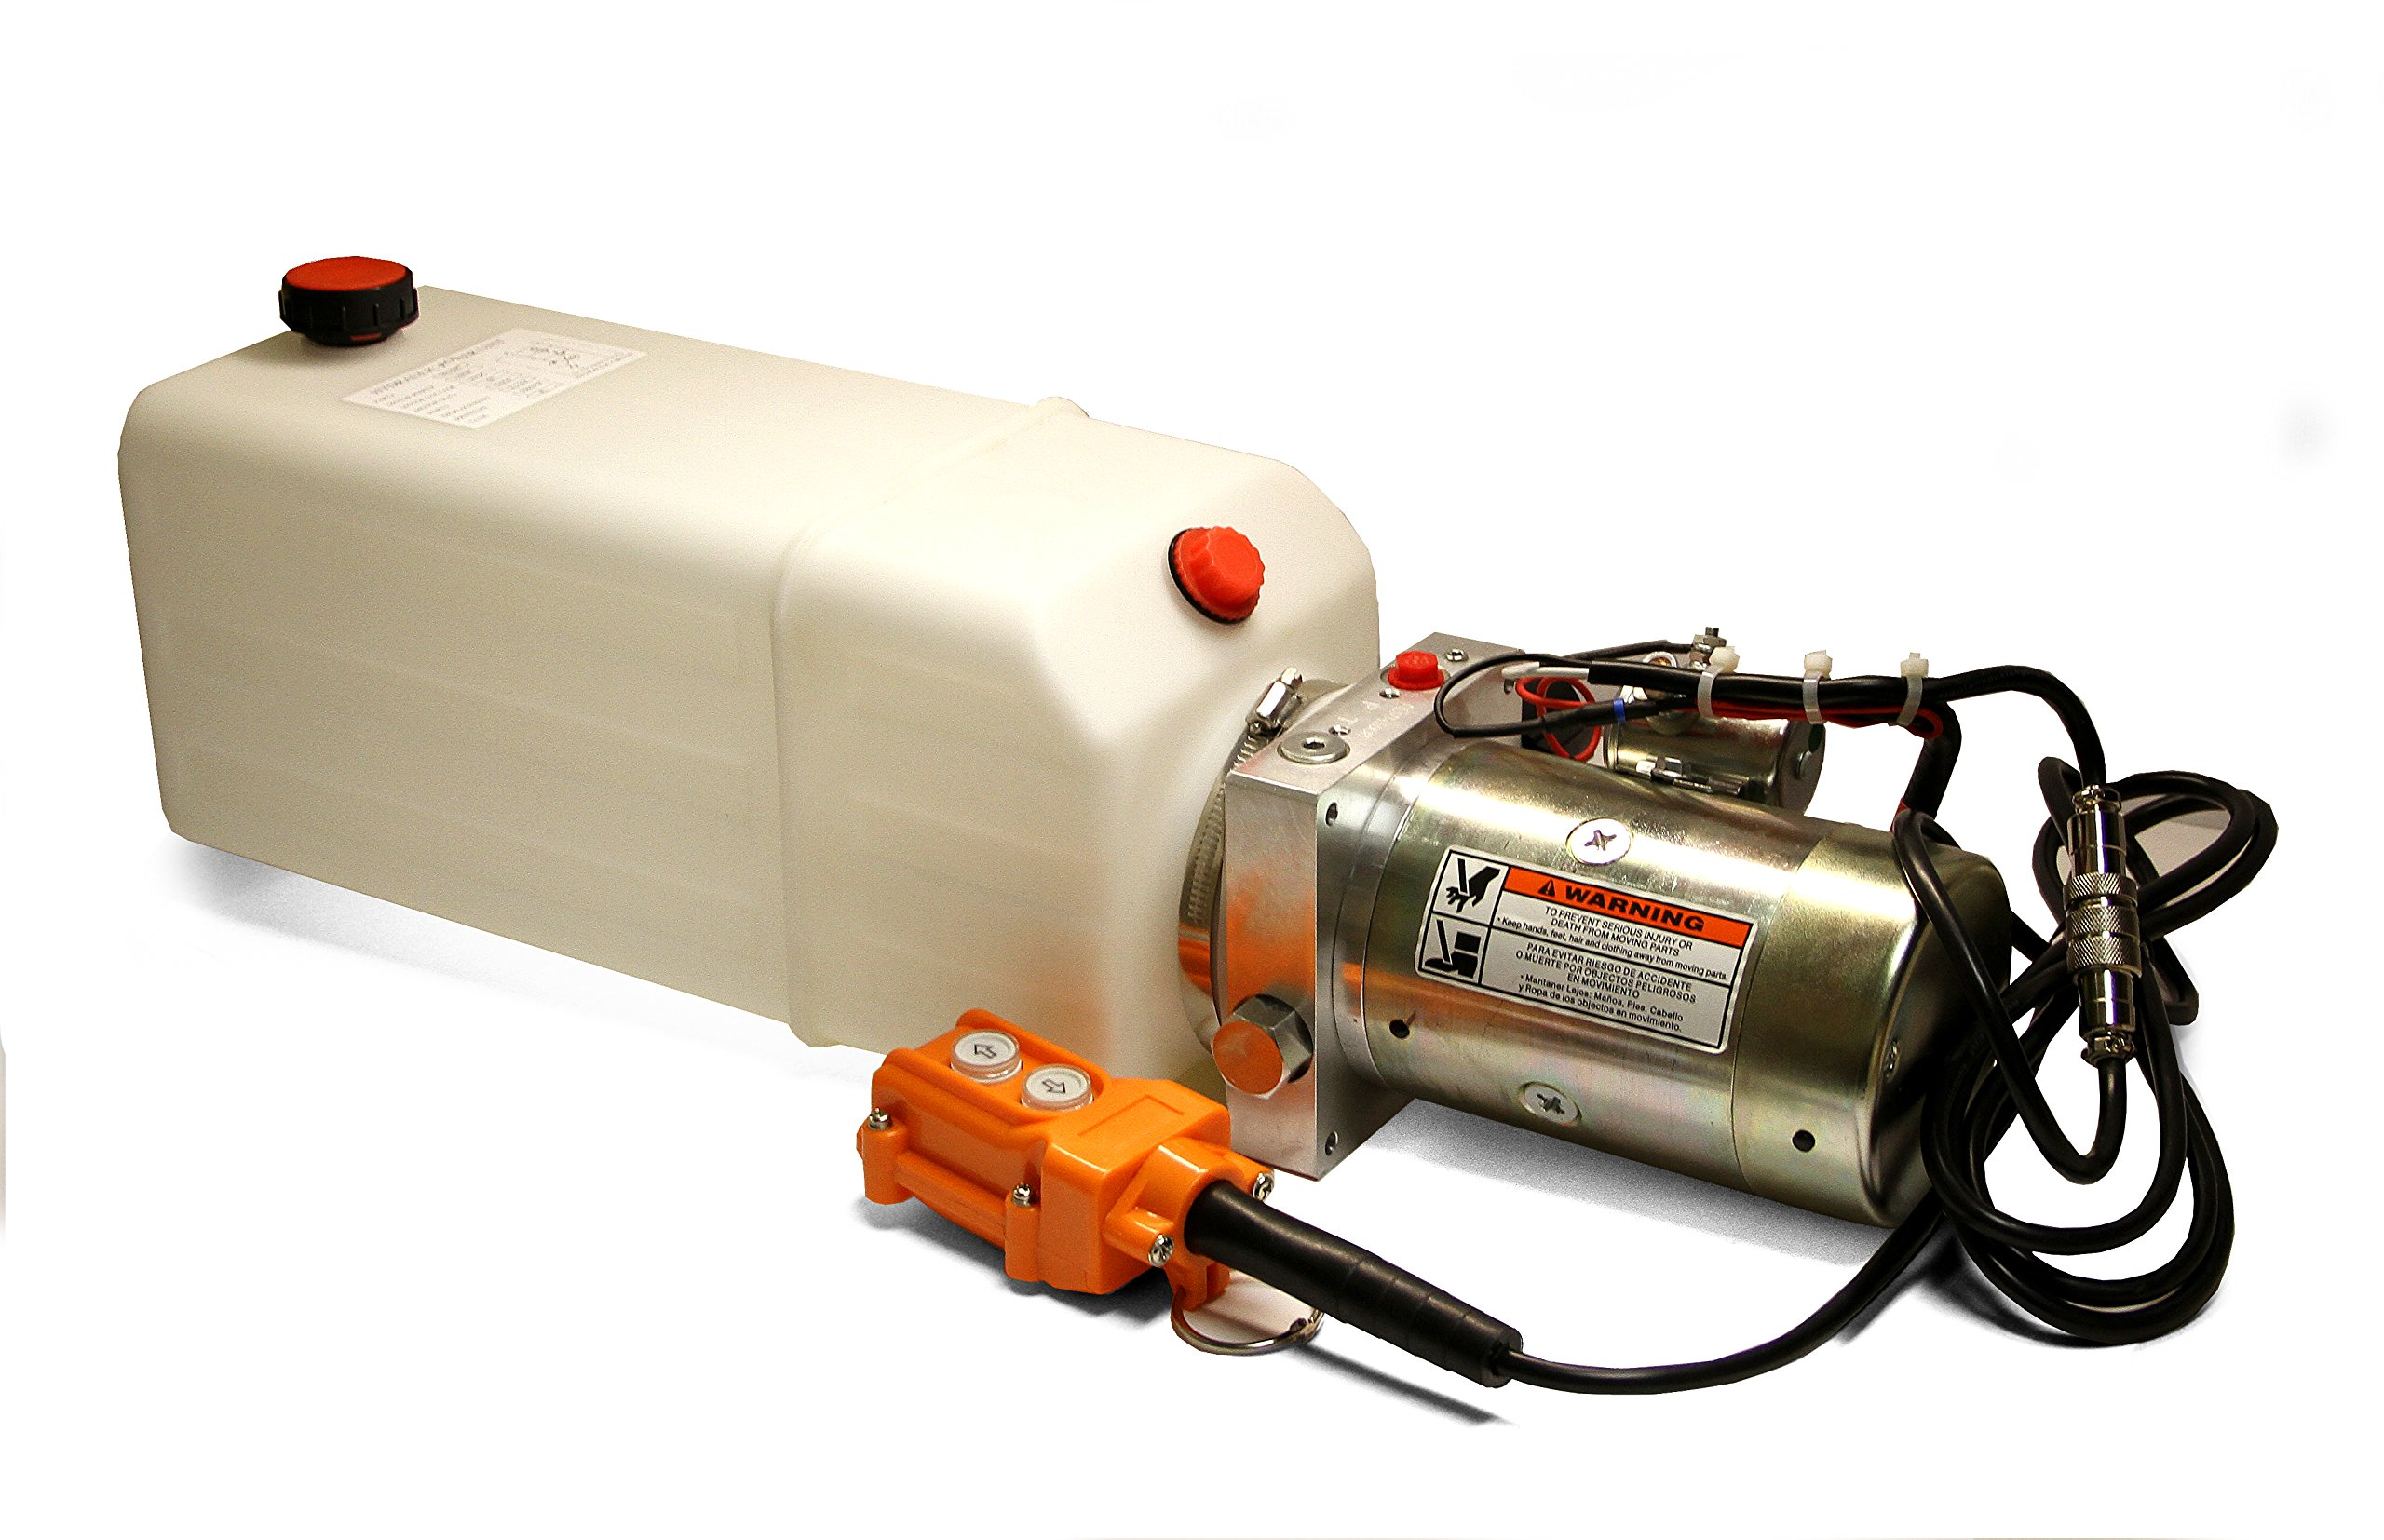 Maxim Hydraulic Power Unit (12V DC, Single Acting): 1.3 GPM Flow, 1 Gallon(4 QT) Poly Tank @2500 PSI #6 SAE Port Size and Solenoid Operated With HPU Dimensions: 16.25'' L x 8.3'' W x 8'' H